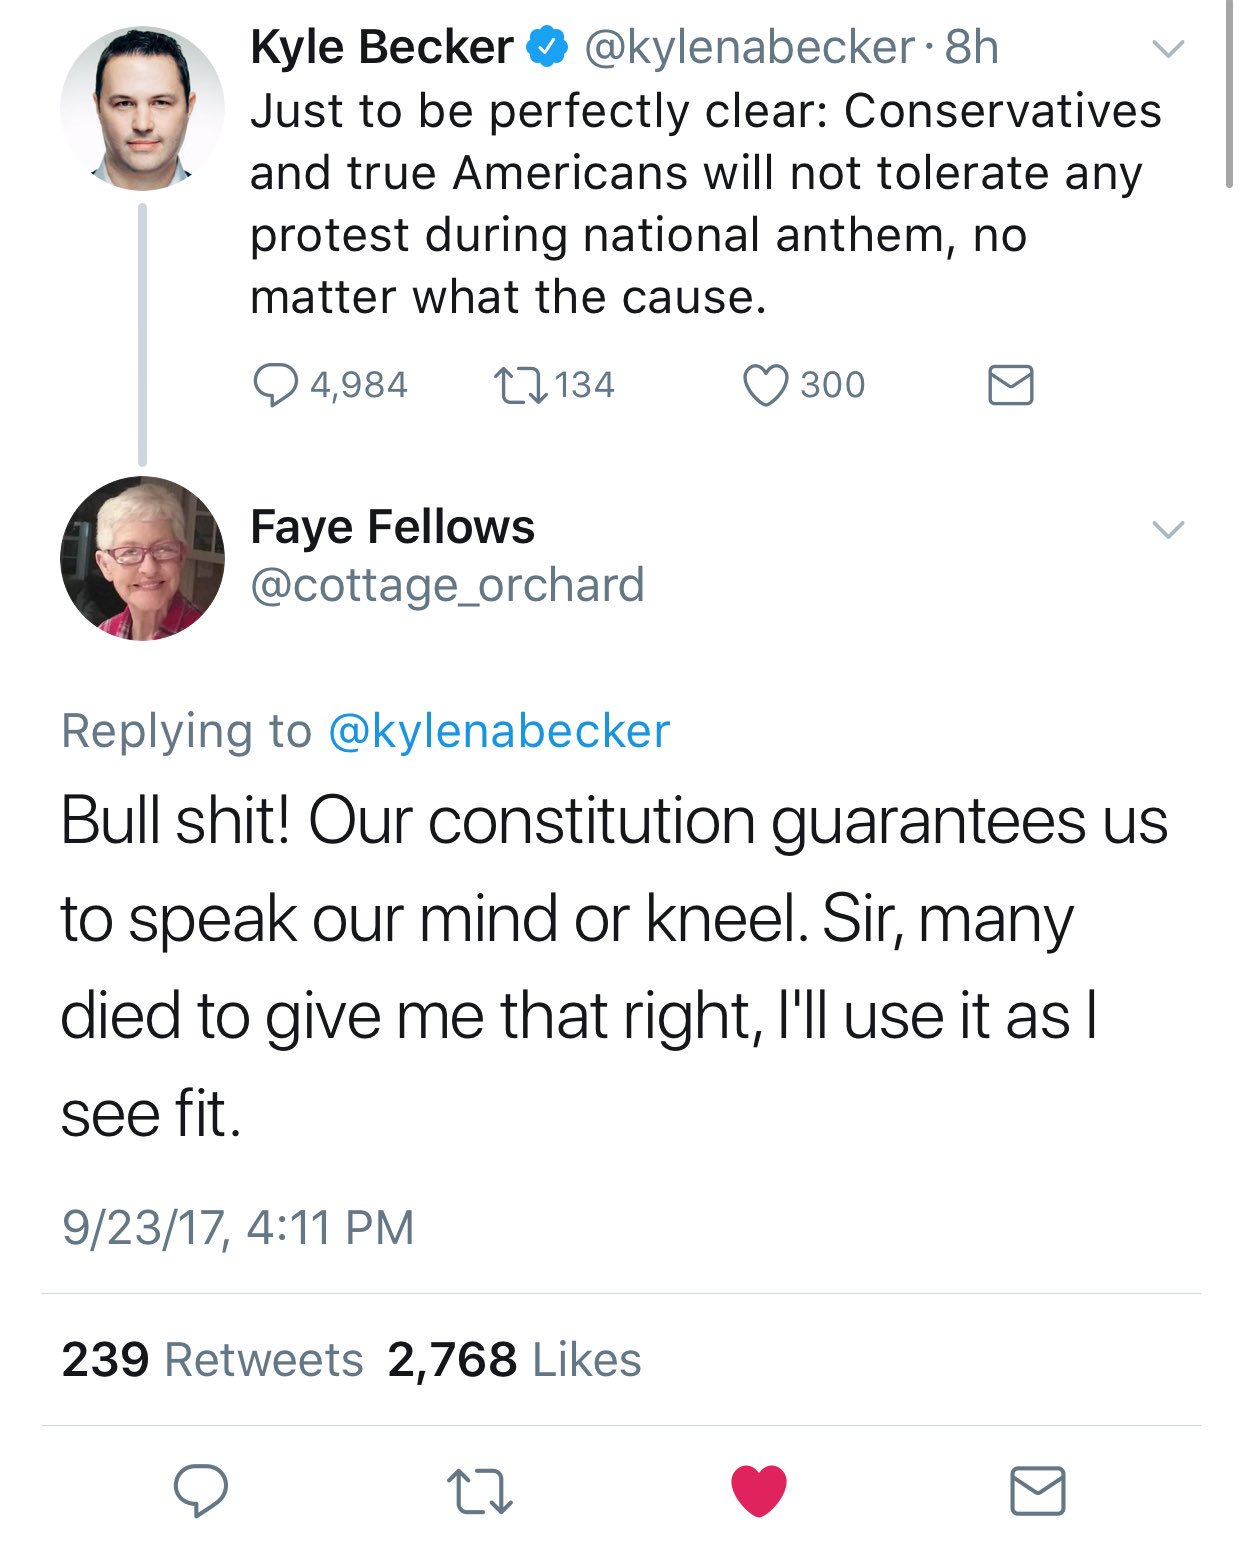 RT @JordanUhl: fuck him up, faye https://t.co/4qSpPYXYFm